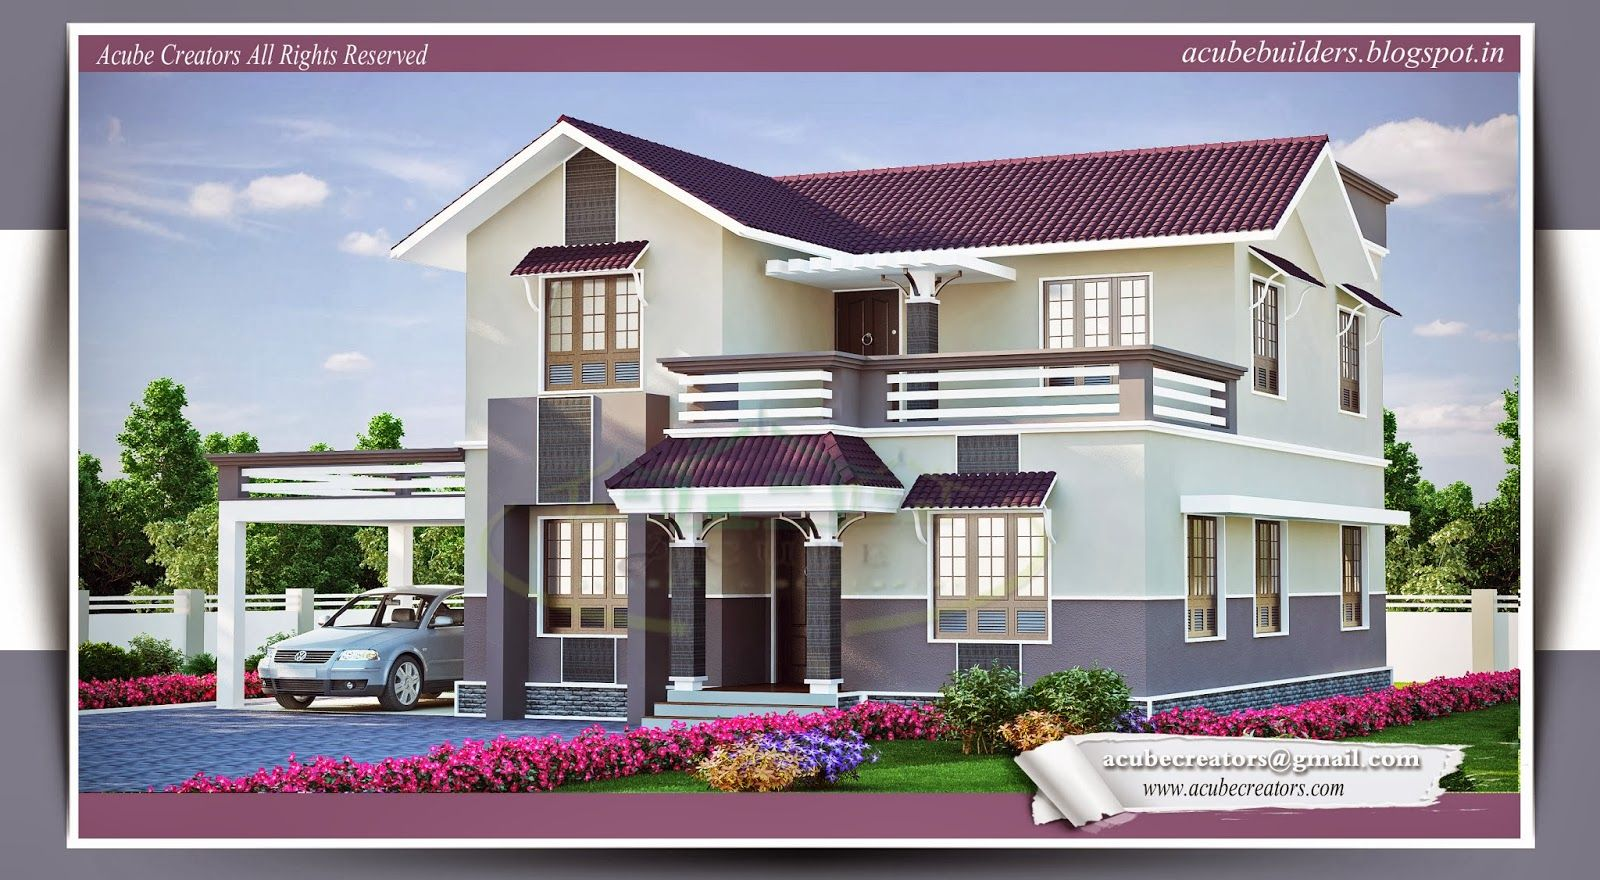 New beautiful house design custom kerala home design elevation1 latest house designs new home designs